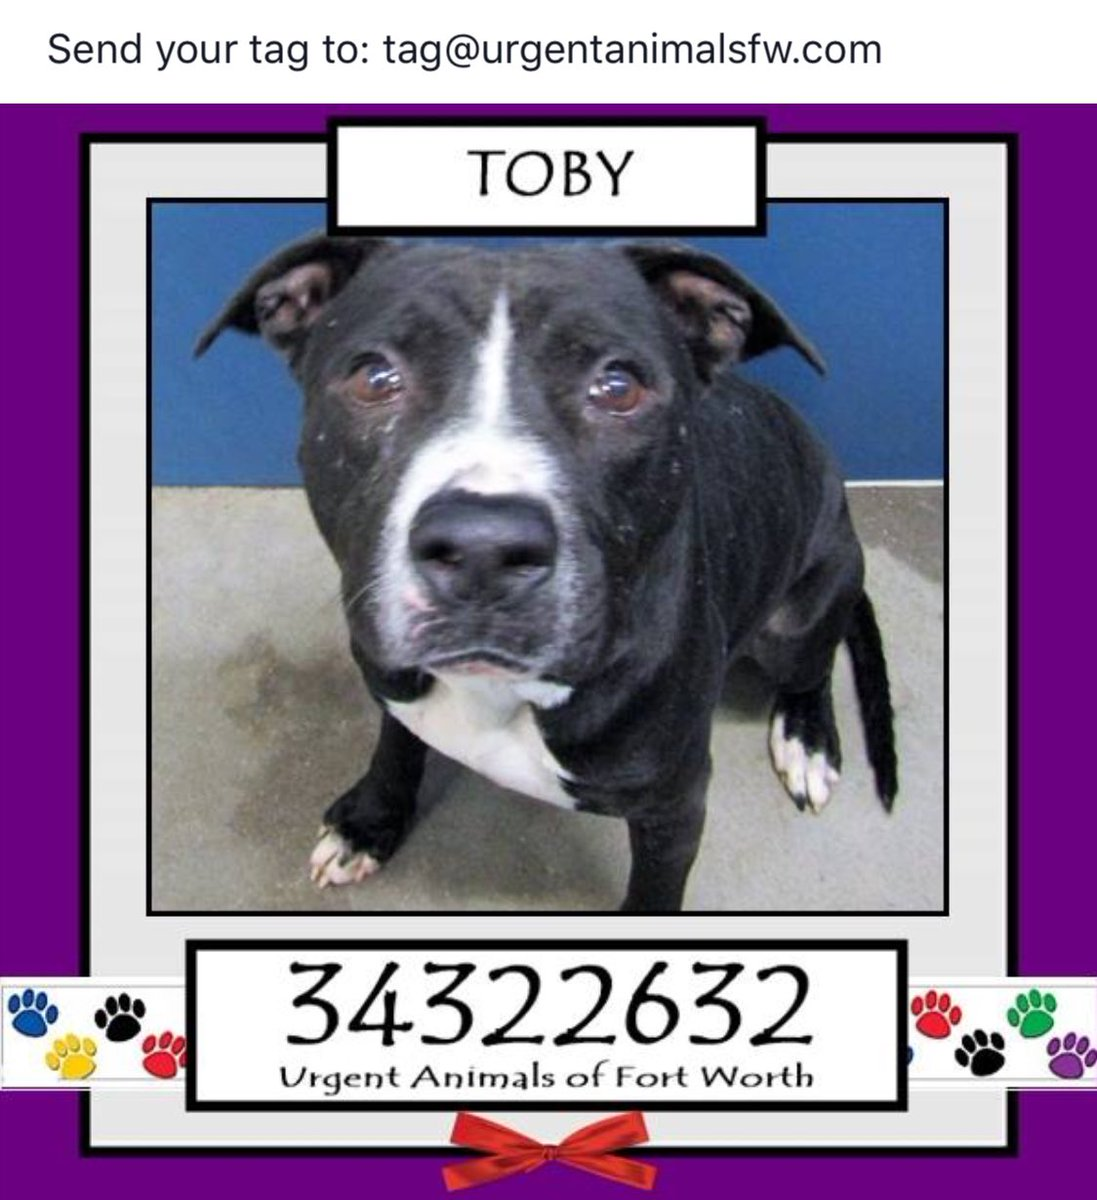 IMMEDIATE #ADOPT #FOSTER #RESCUE TAG NEEDED 2SAVE 2YR OLD TOBY #FortWorth #TX SWEET BOY NEEDS A #HERO #PLEDGE  https://www. facebook.com/fwaccurgents/p hotos/a.866615710077191.1073742653.137921312946638/1366350640103693/?type=3 &nbsp; … <br>http://pic.twitter.com/35DZ81NXBS